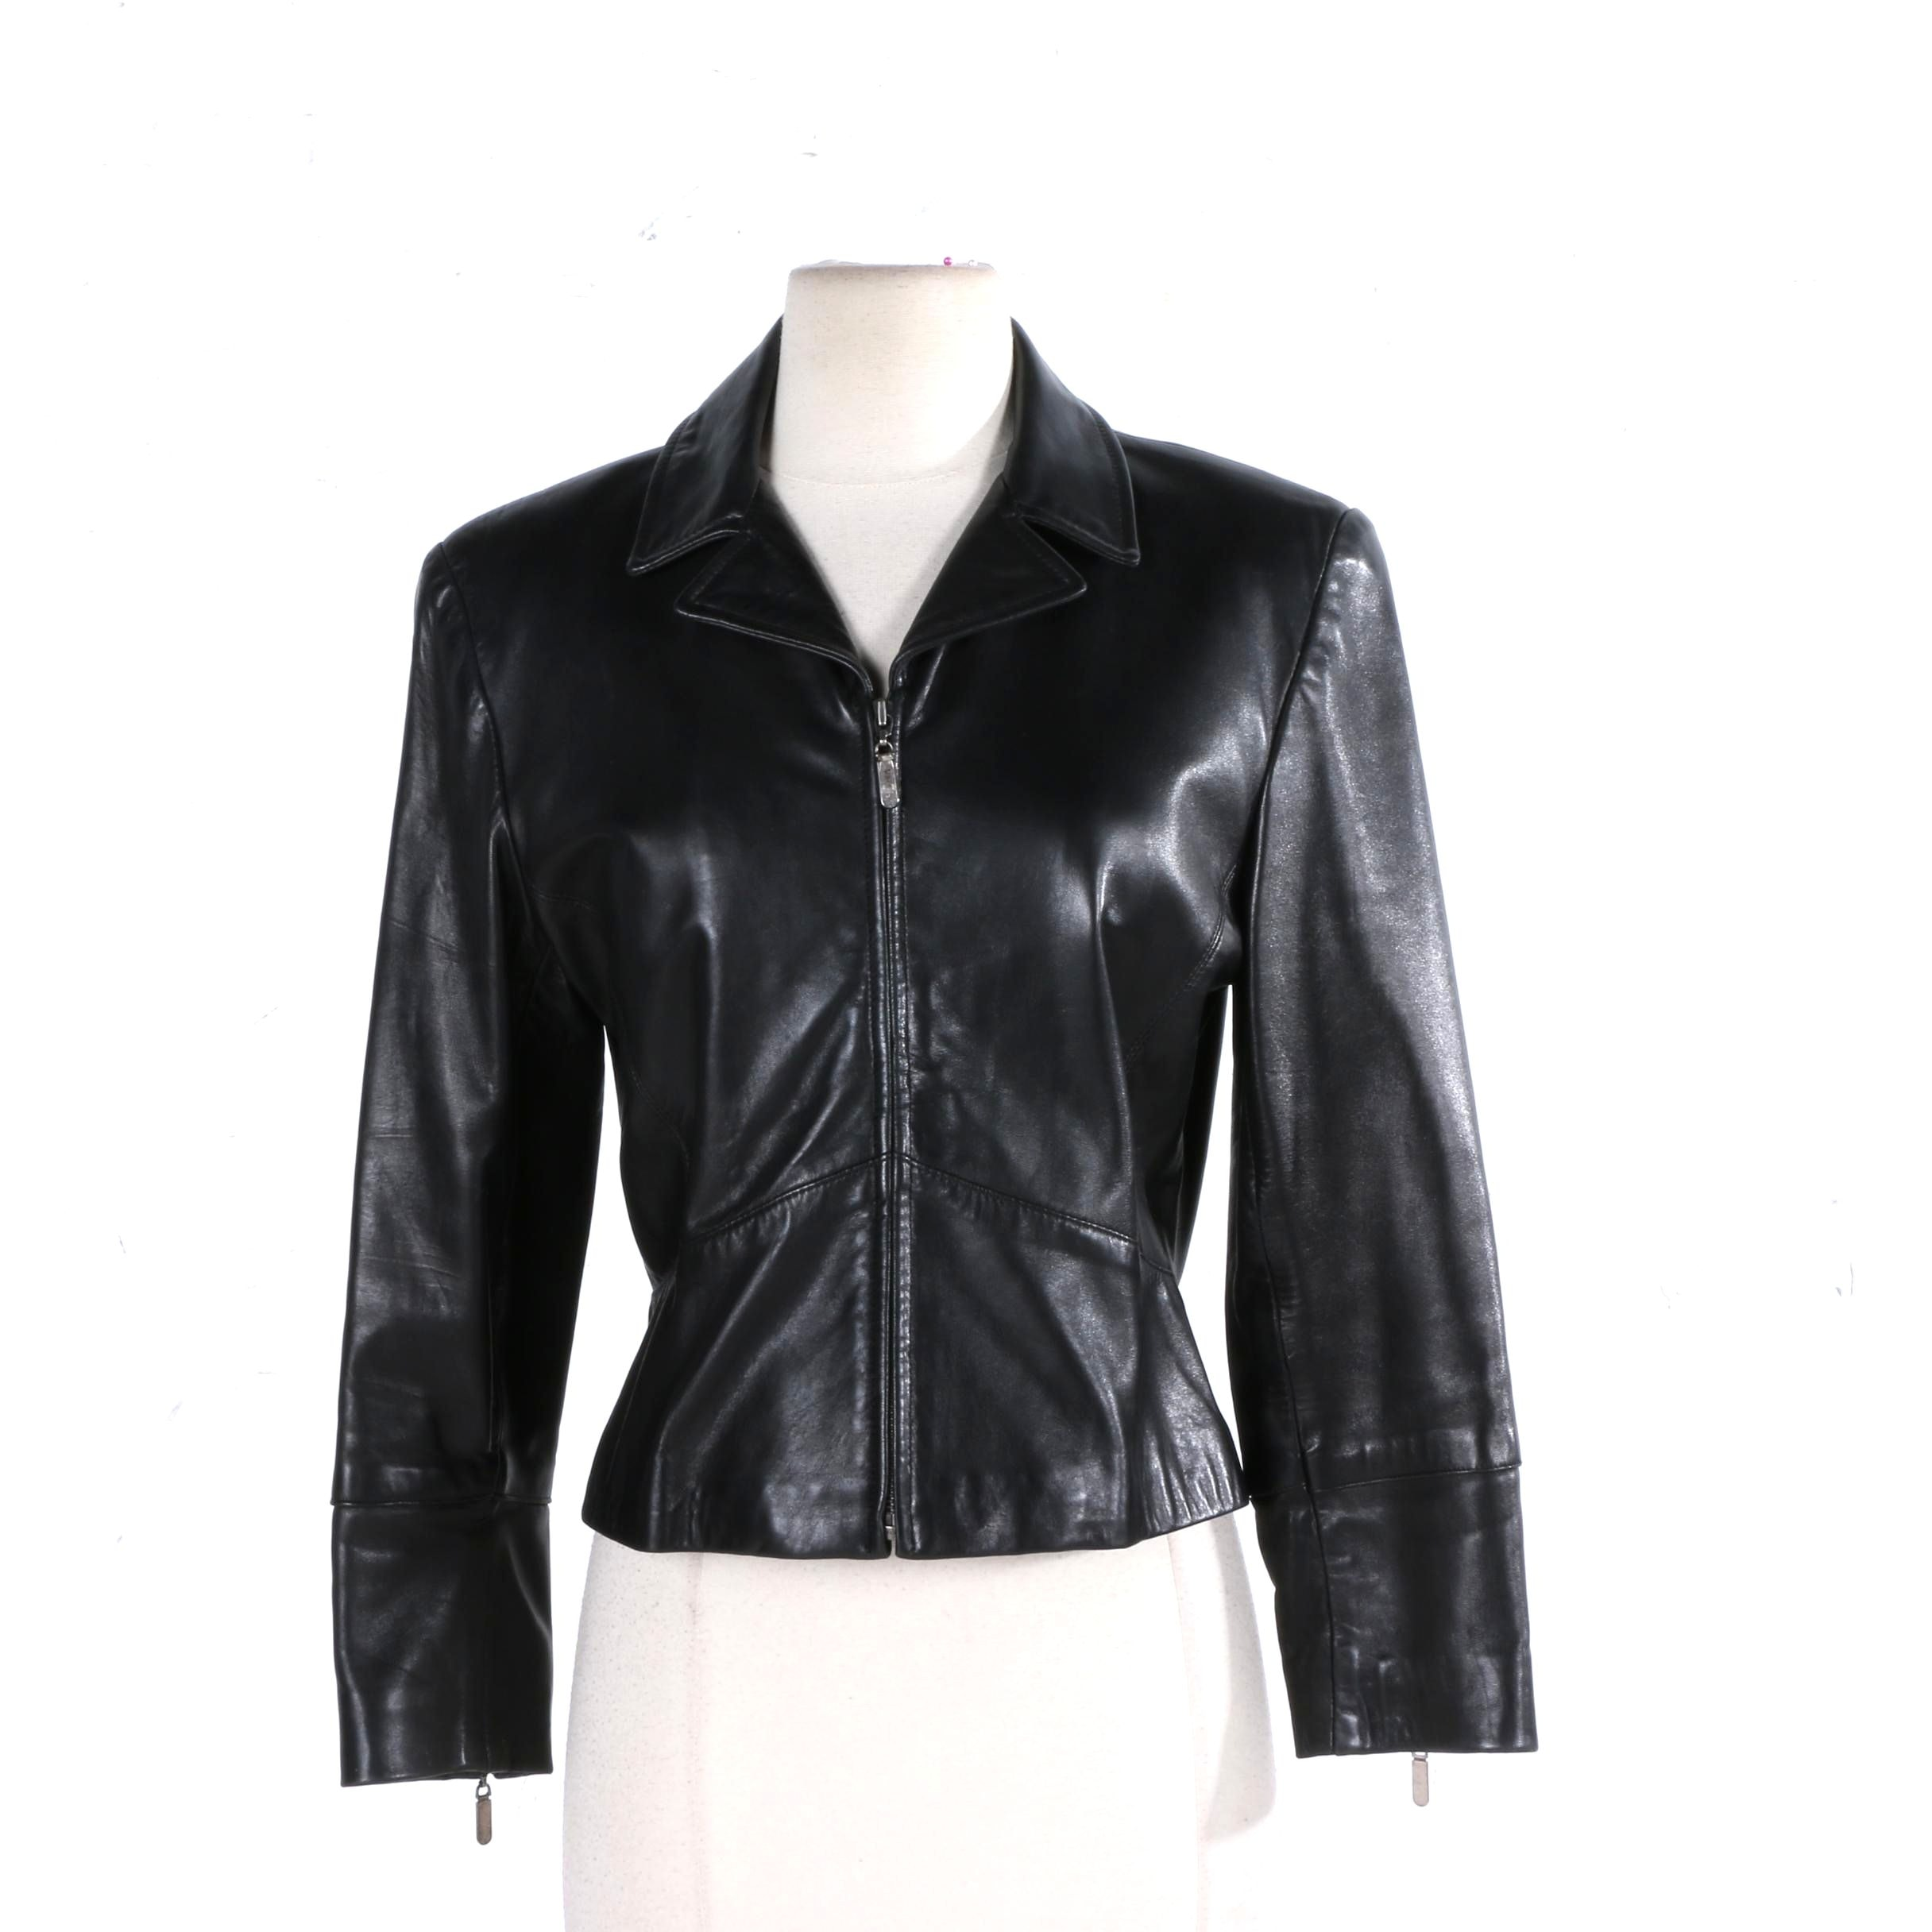 Women's Black Leather Jacket by Siena Collection